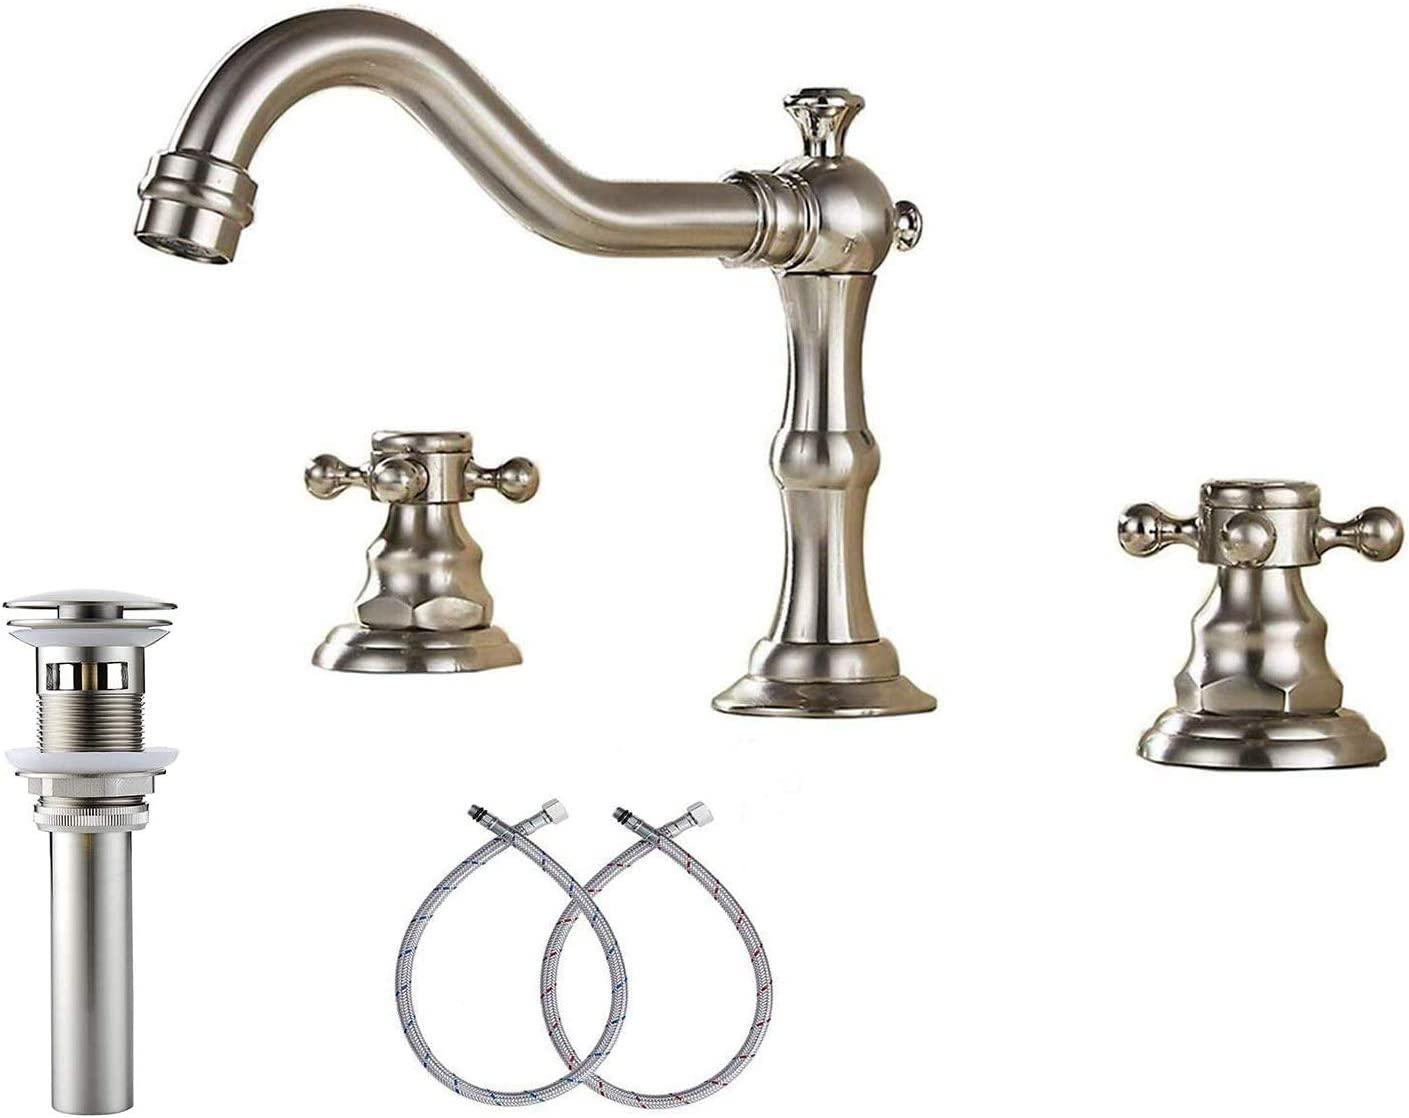 Antique Brass Two Handles Three Holes Faucet 8-16 inch Widespread Bathroom Sink